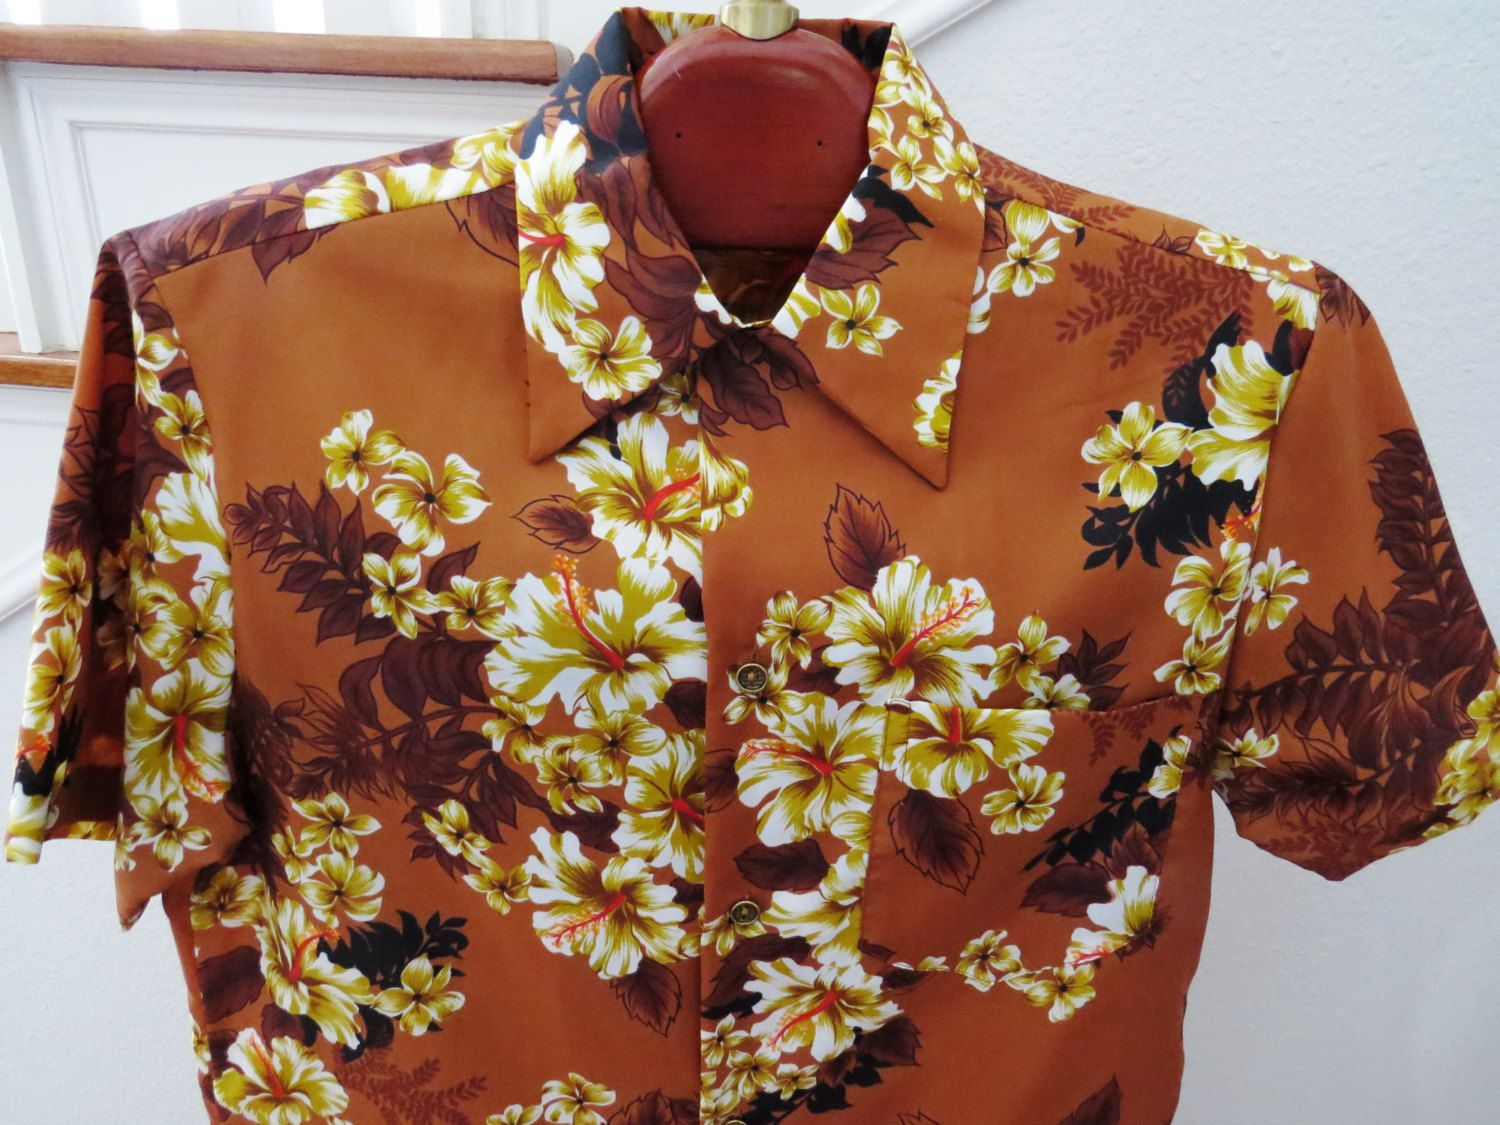 e76b0c3c 1960s Mod Hawaiian Aloha Shirt by Royal Hawaiian - Size M - Vintage Men's  Aloha Shirt - Brown Gold Hibiscus - Made in Hawaii - Collectible by ...